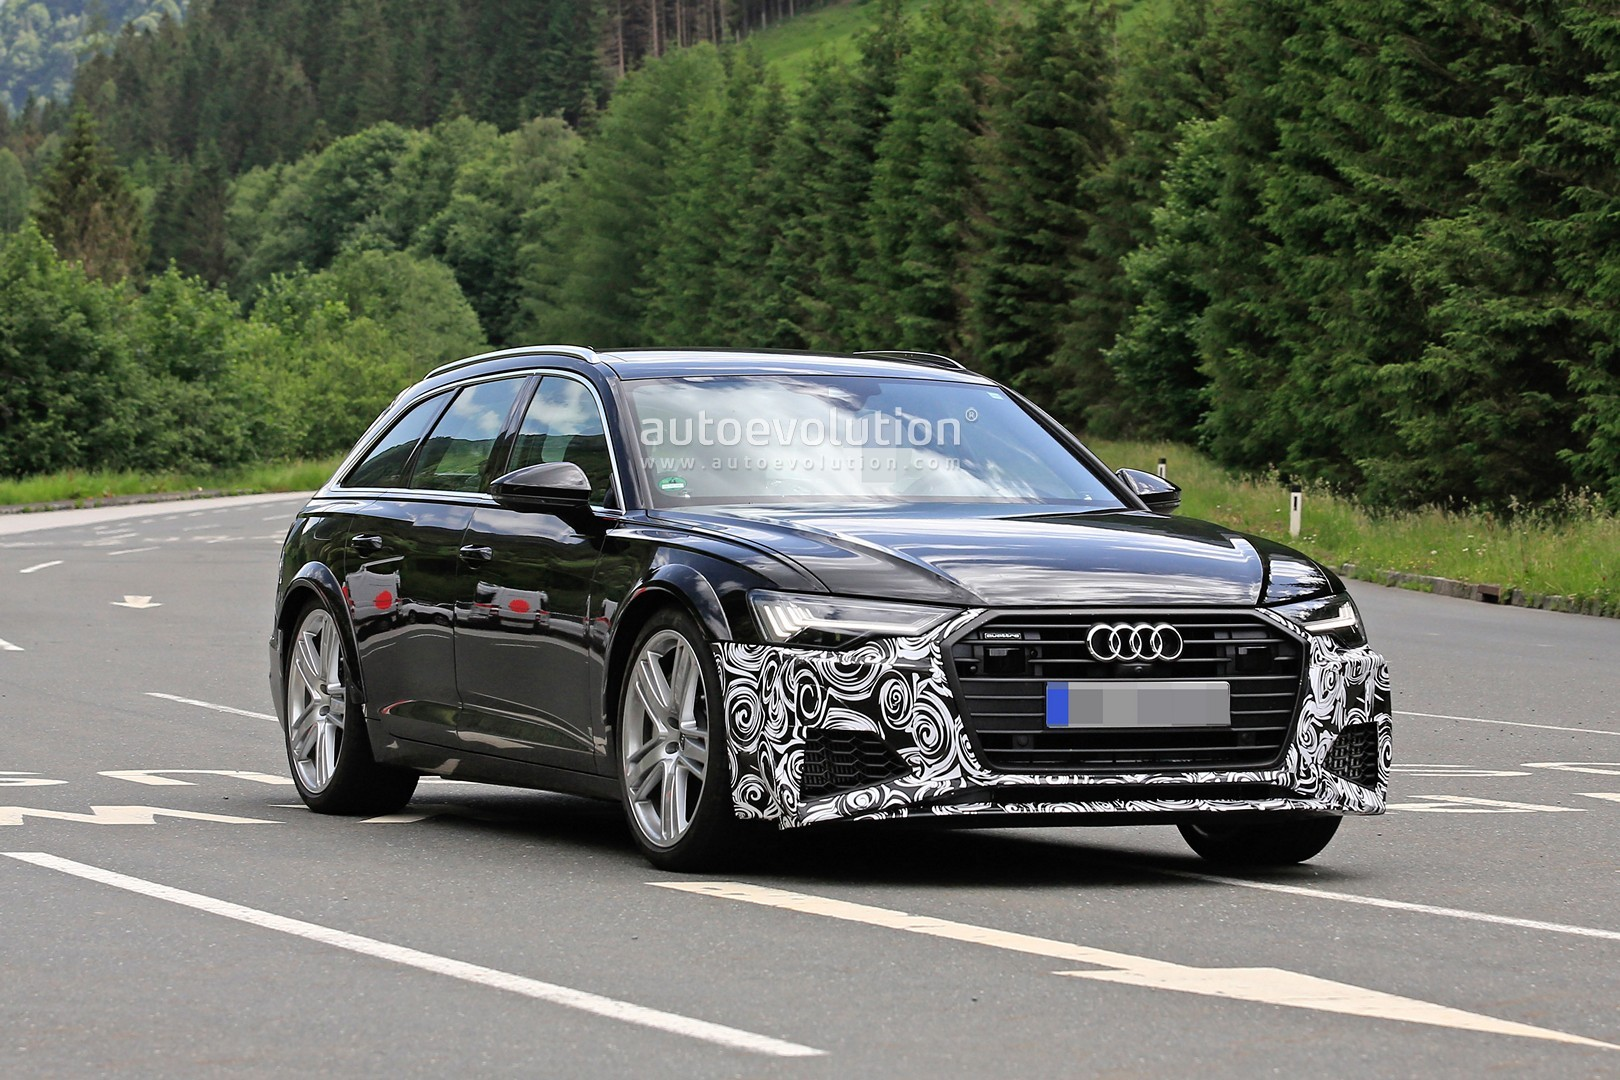 2020 Audi Rs6 And Probably The Rs7 Will Get 605 Hp From New V8